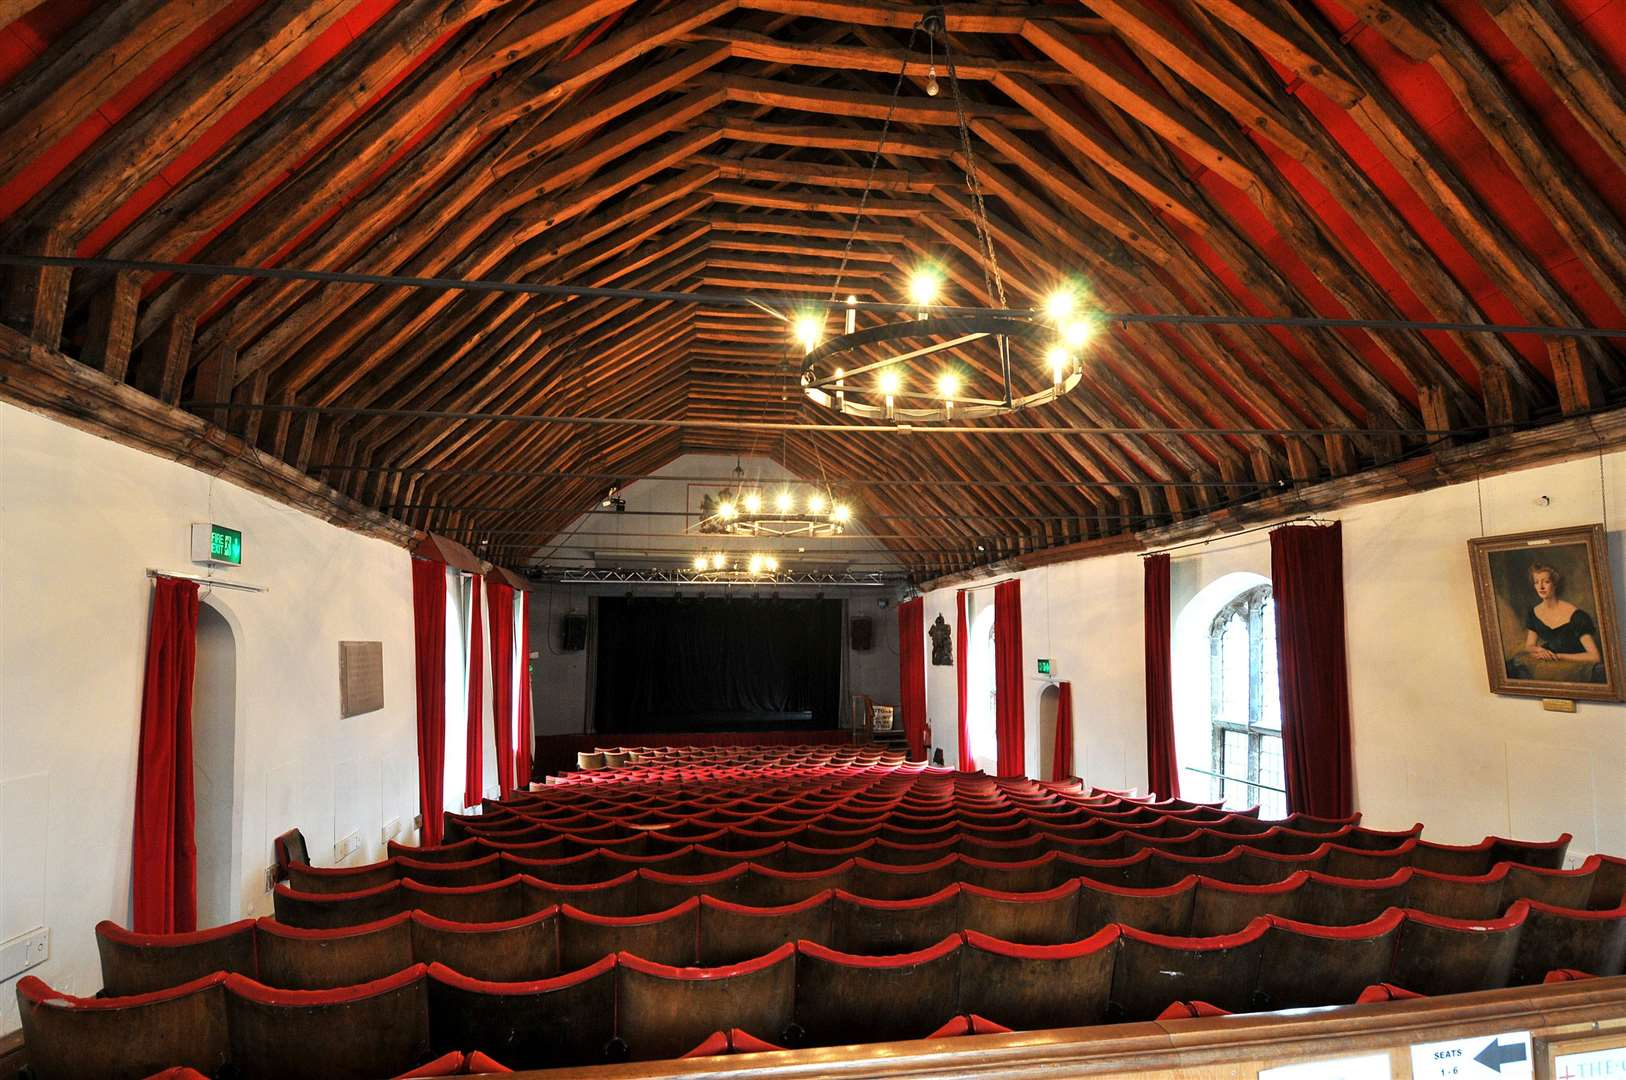 King's Lynn Arts Centre - St George's Guildhall. (6148047)